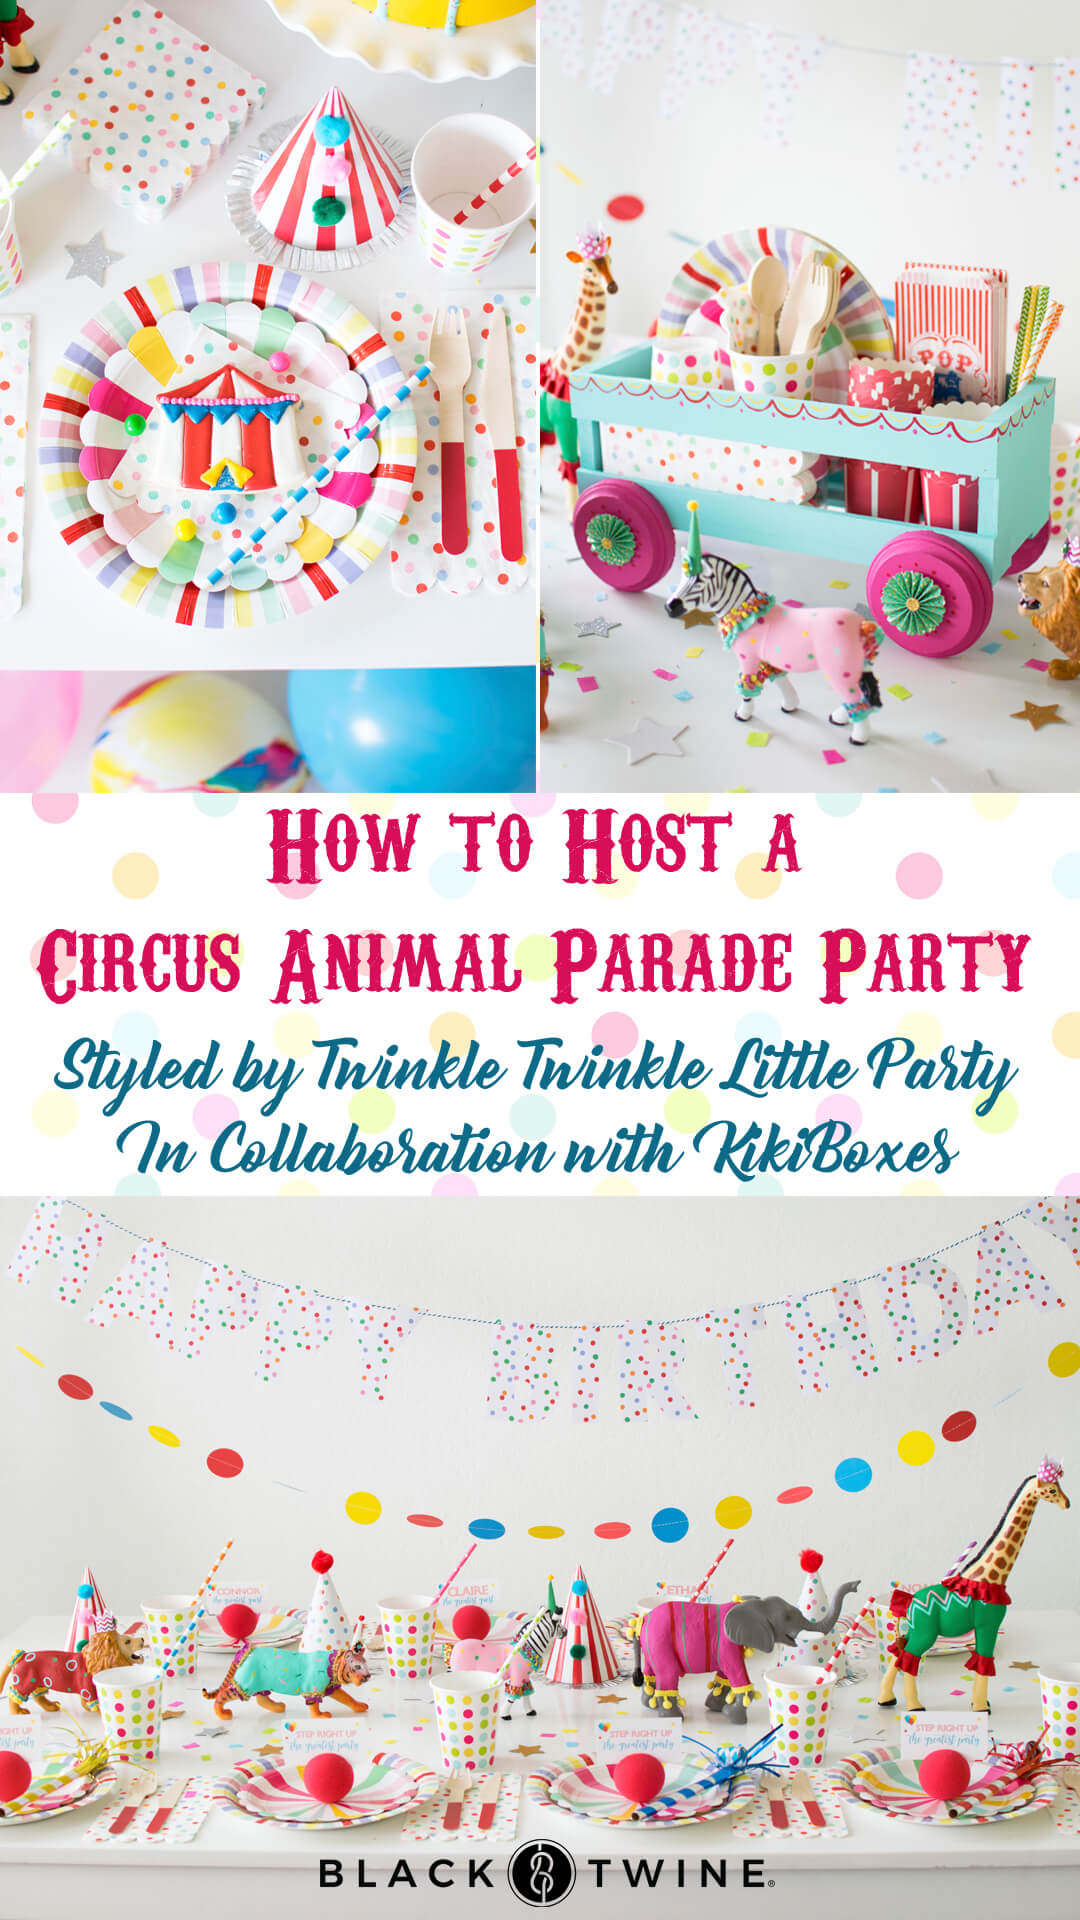 Photo Collage from Circus Animal Parade Party styled by Twinkle Twinkle Little Party | KikiBoxes | Black Twine